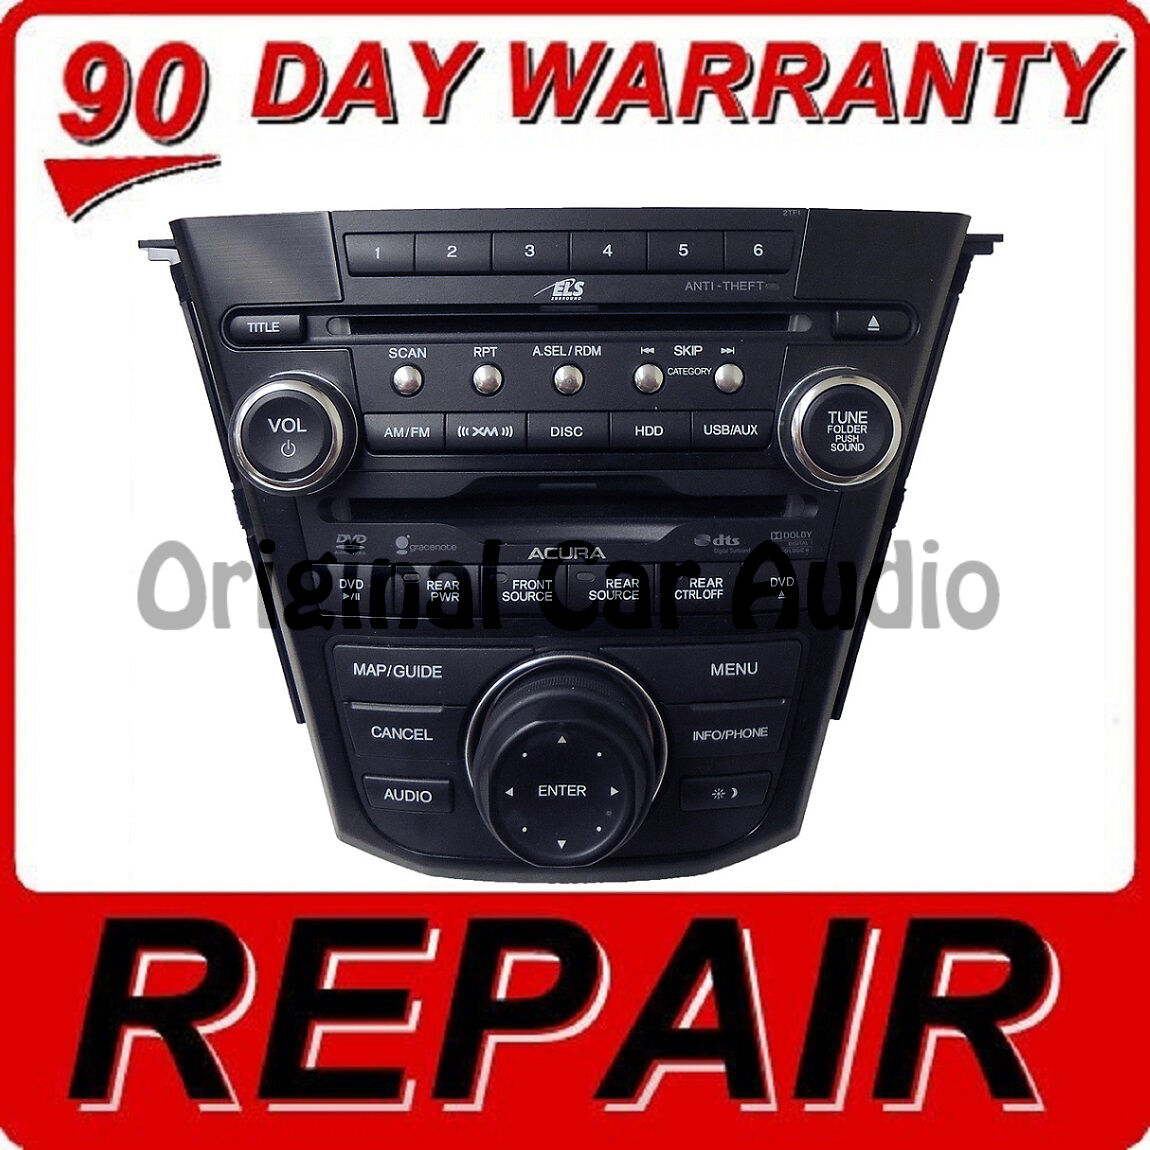 Repair Fix Your Acura Mdx Navigation Radio Stereo Receiver Hard Drive Cd Player Ebay